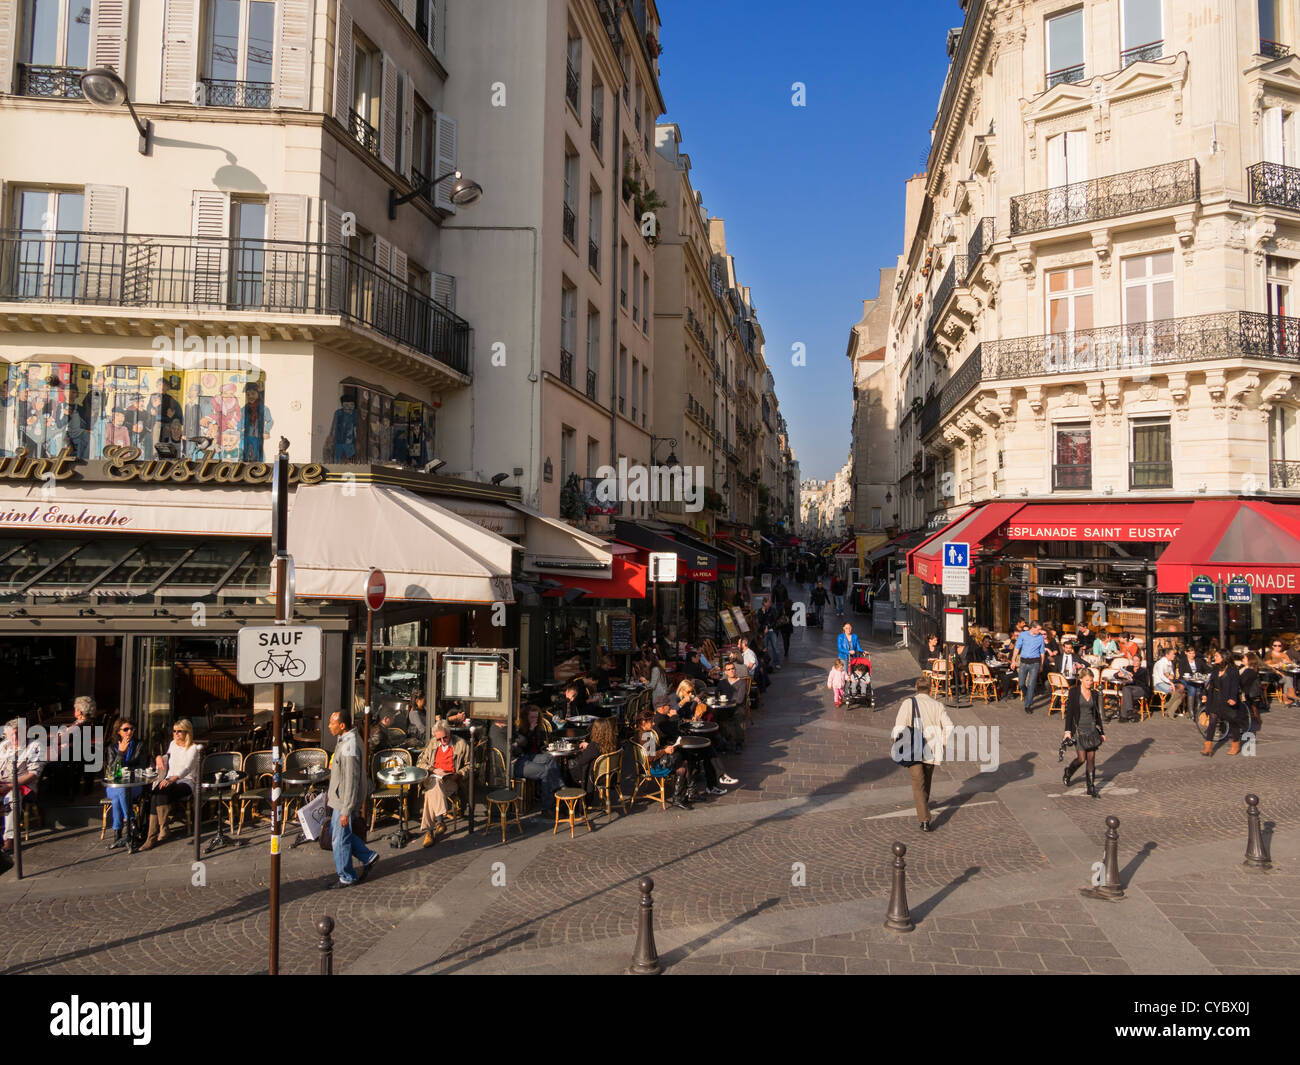 Rue Montorgueil in the busy Les Halles pedestrianized shopping area, Paris. - Stock Image